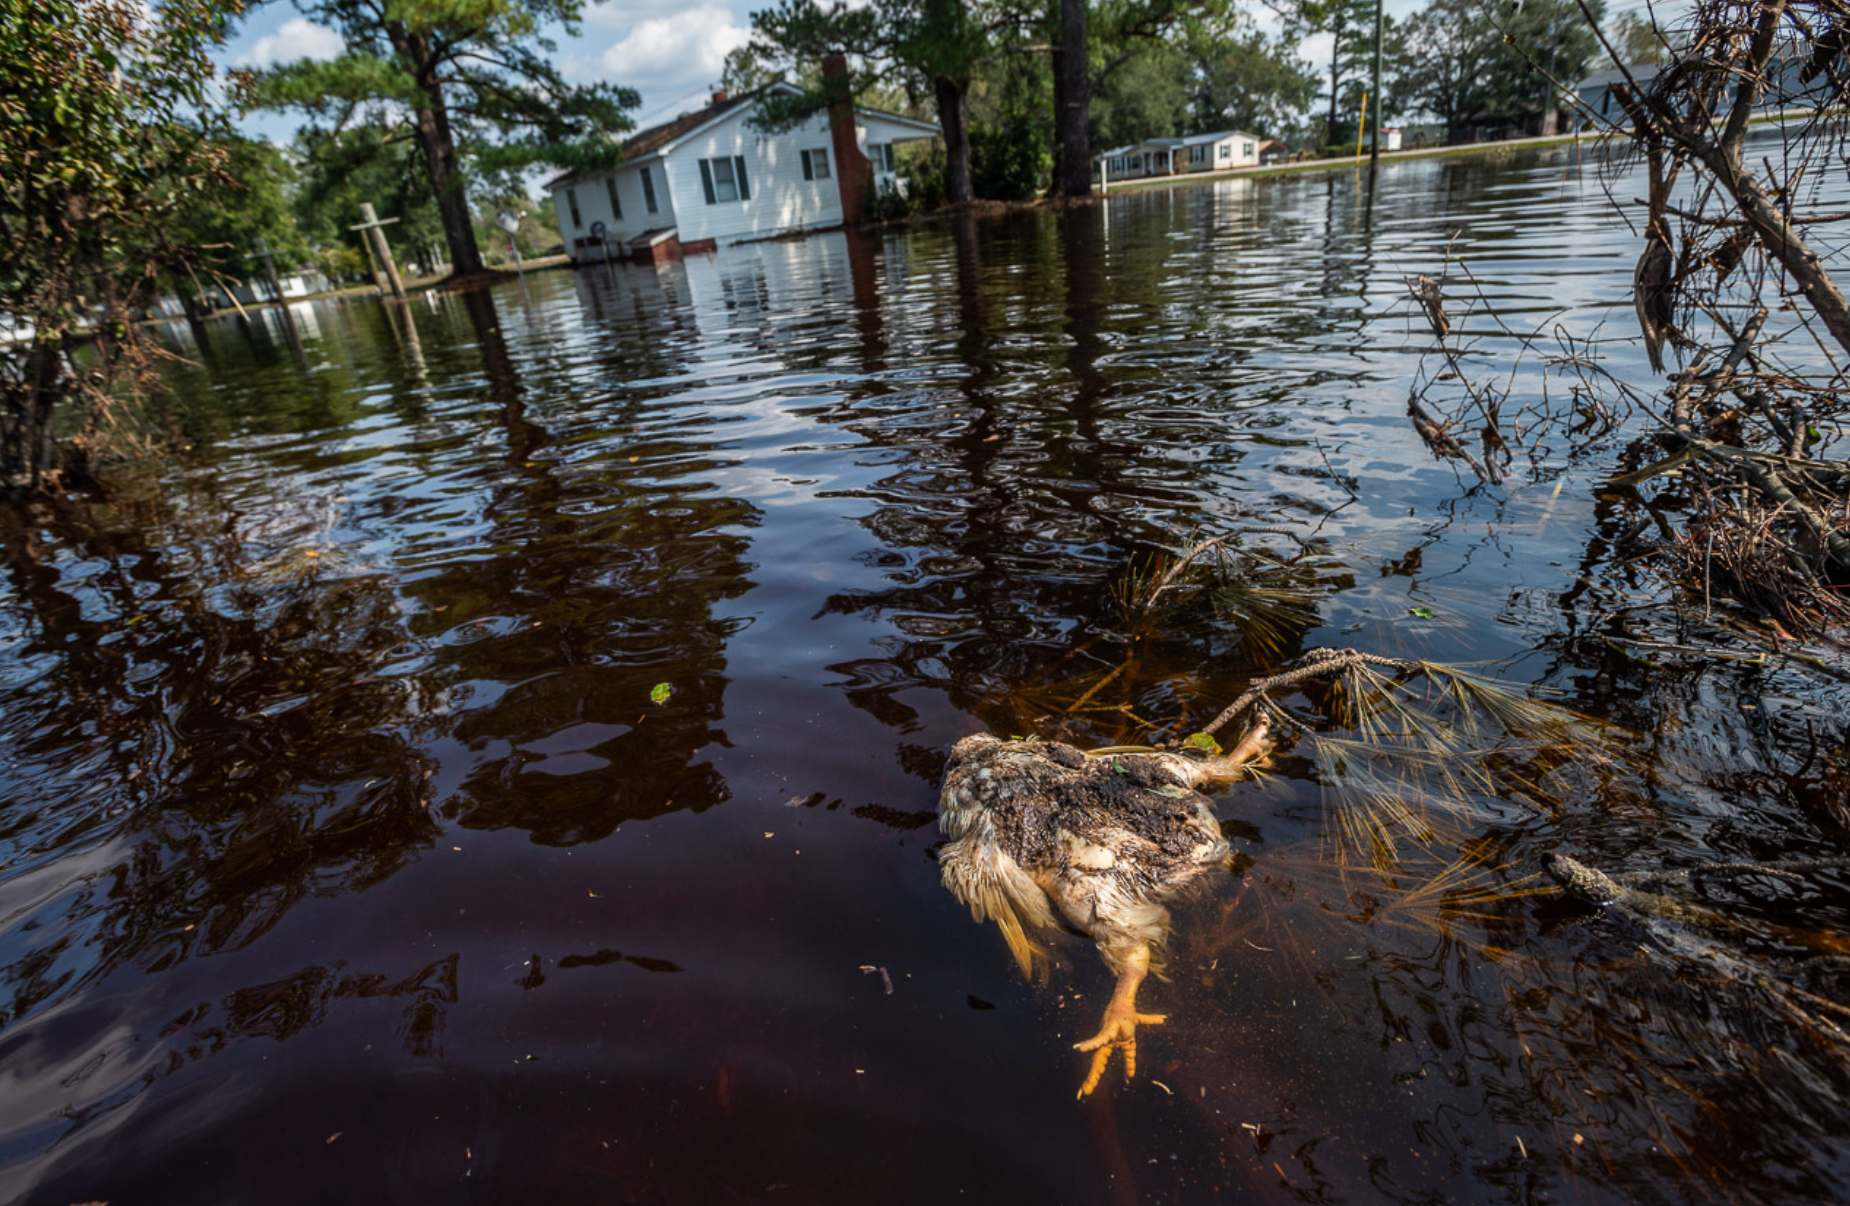 A chicken drowned by Hurrican Florence floodwaters